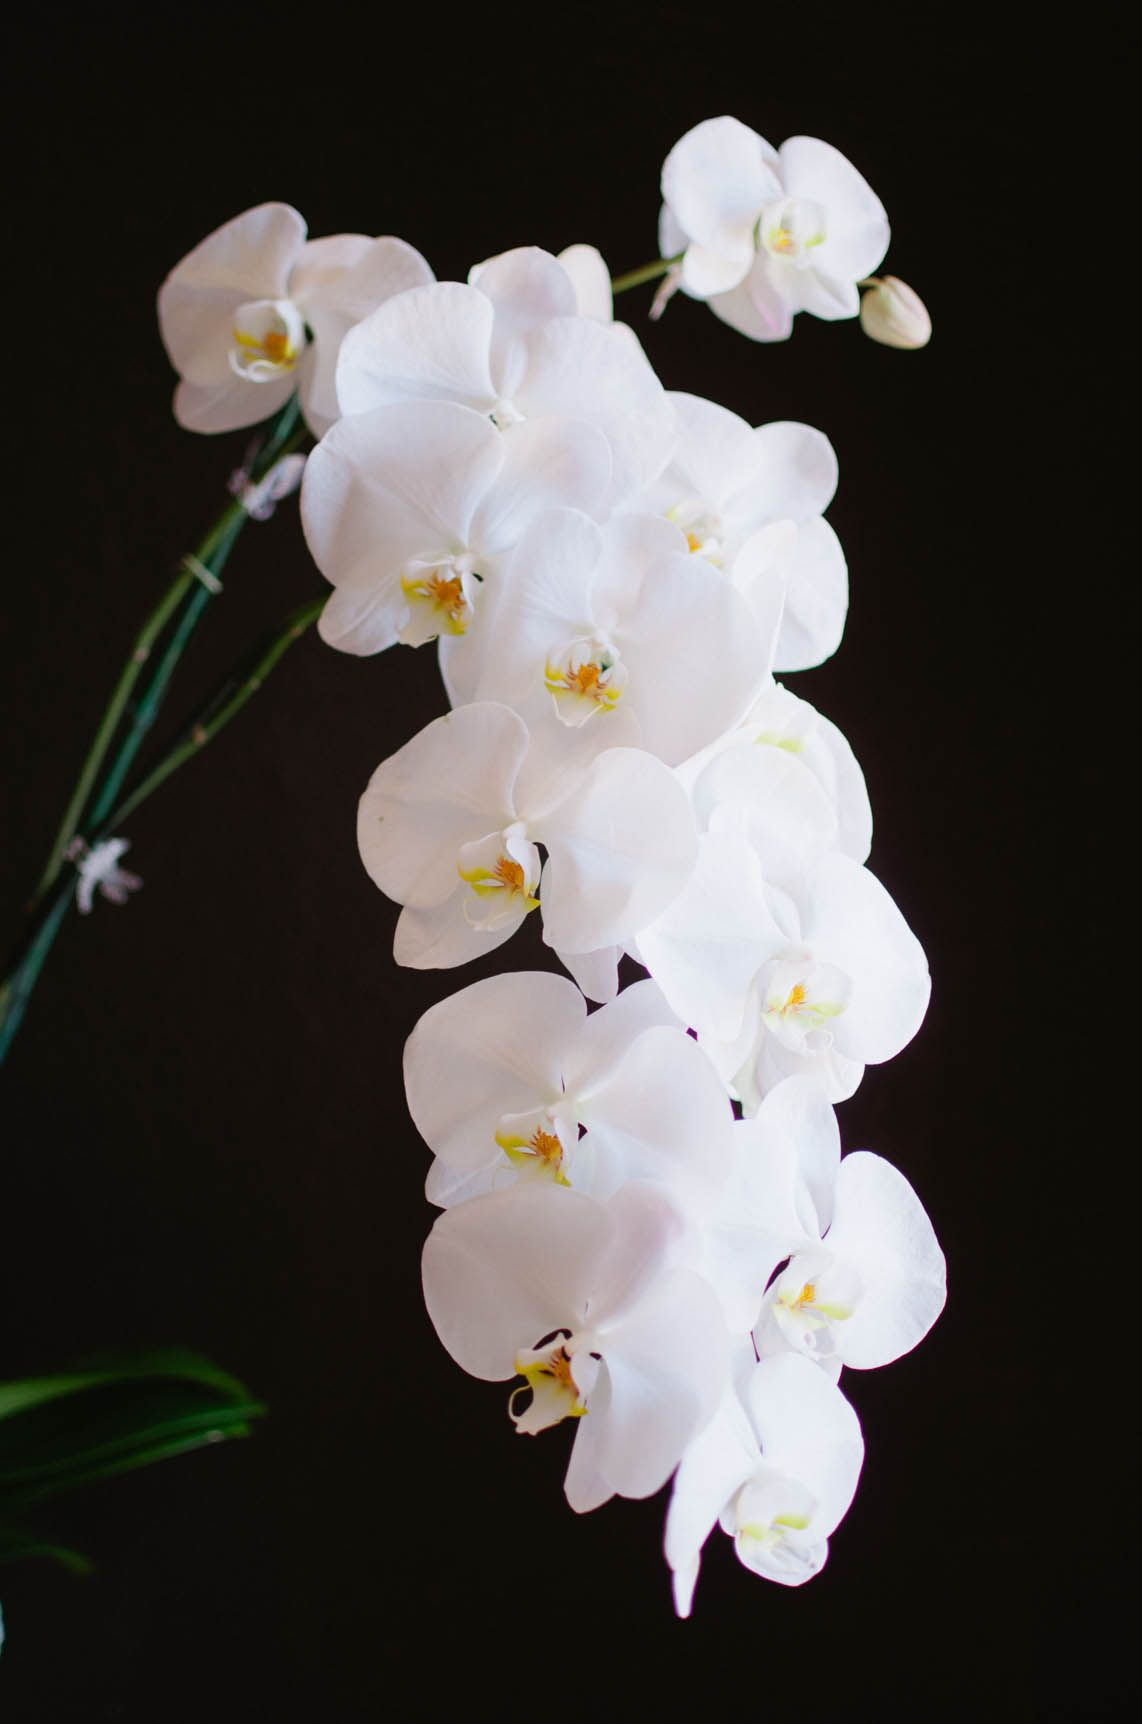 Orchid flower meaning fiori idea immagine white orchids delicate beauty flowers their meaning download image 1142 x 1724 mightylinksfo